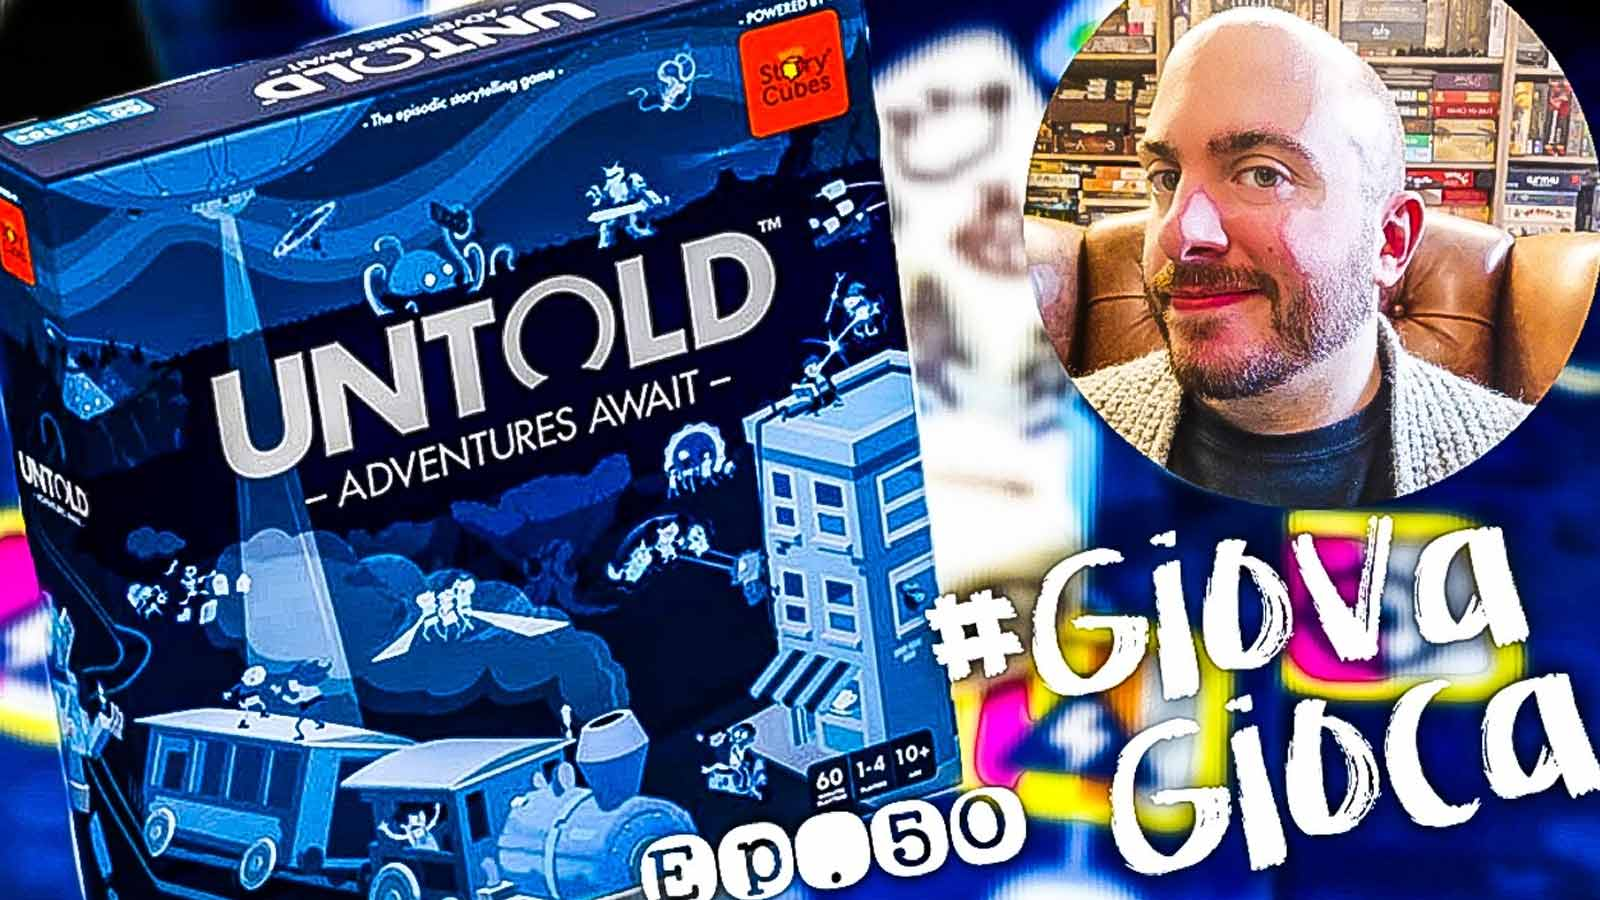 UNTOLD: Boardgame Review